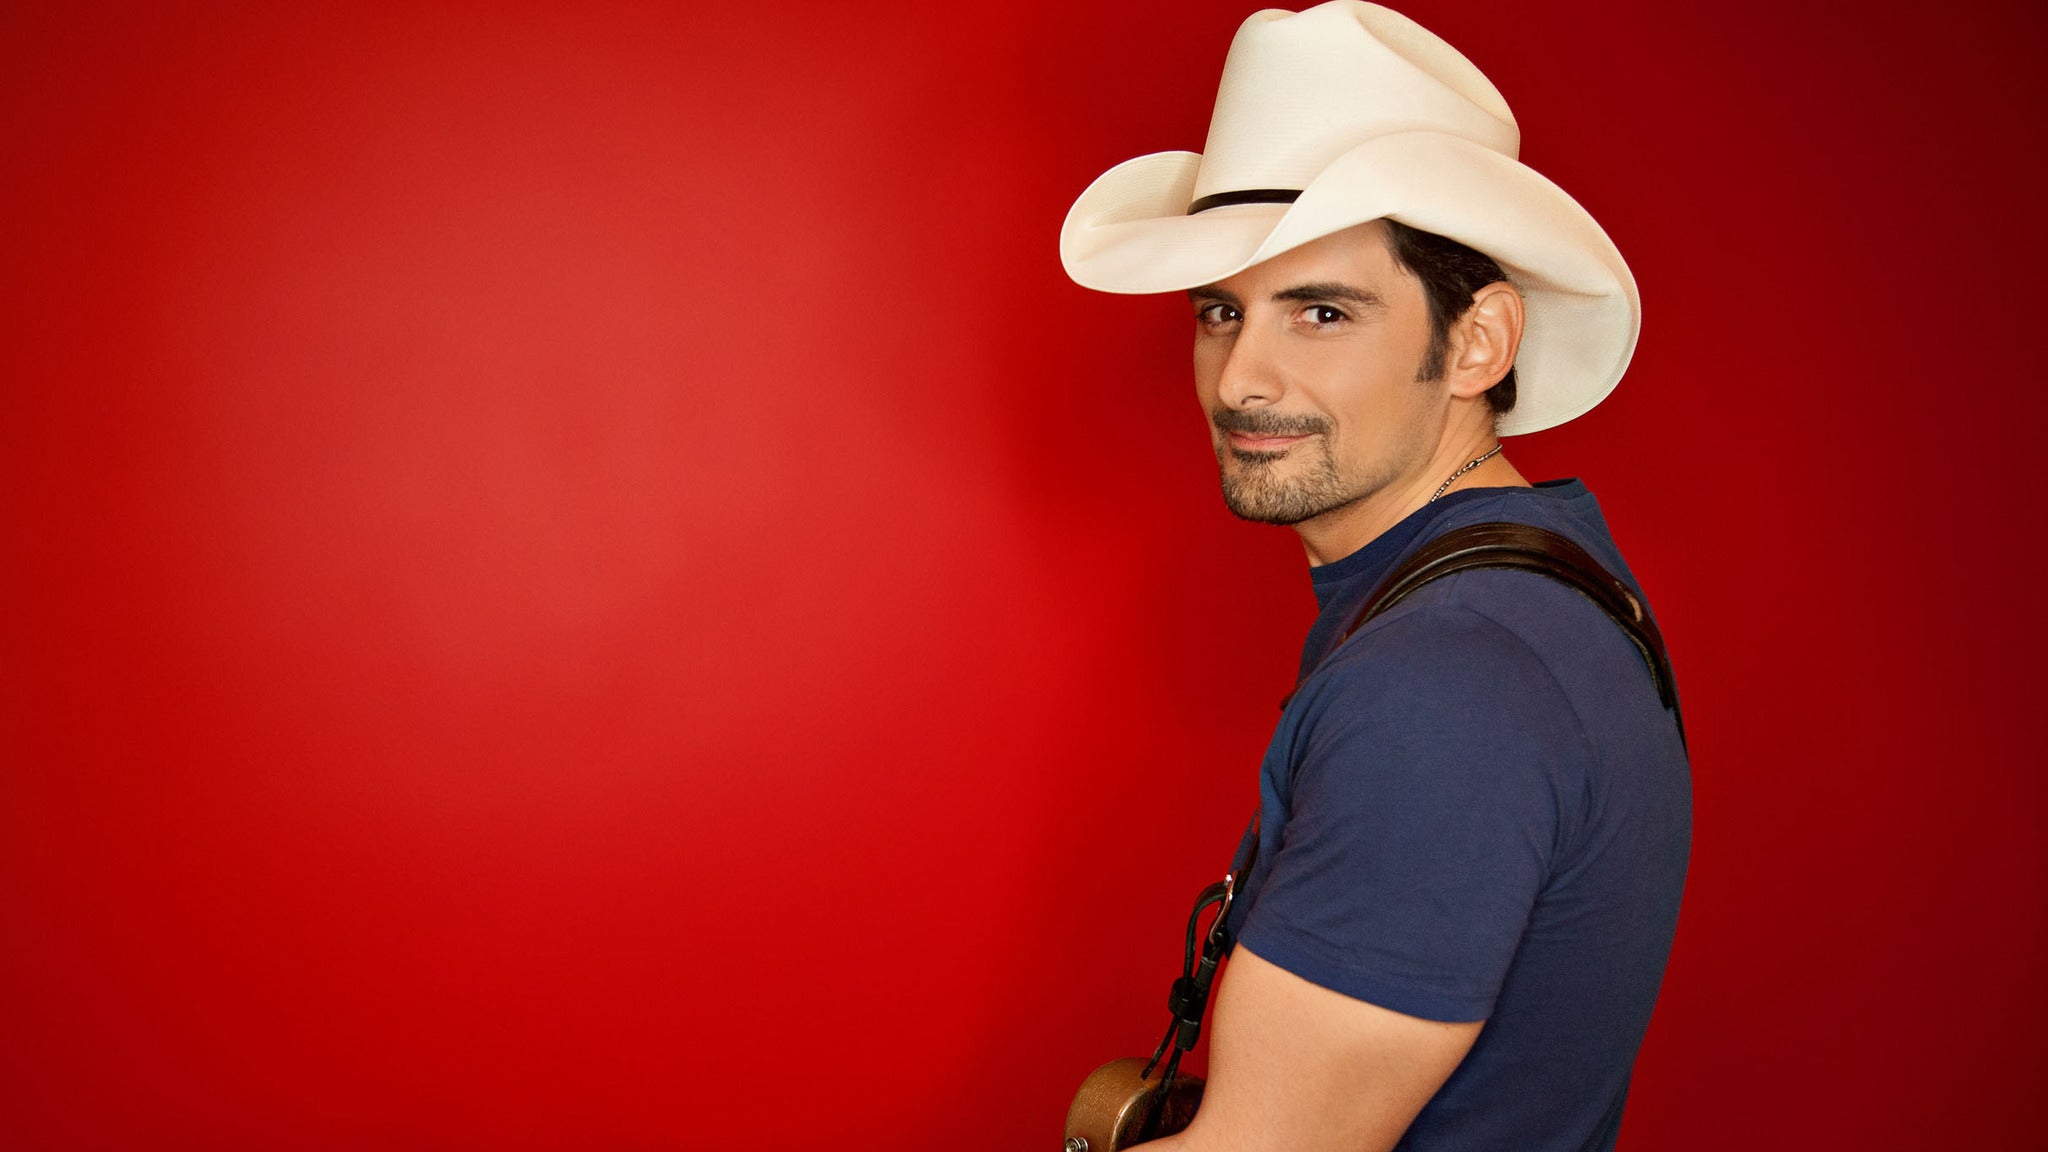 Brad Paisley Tour 2018 at DTE Energy Music Theatre